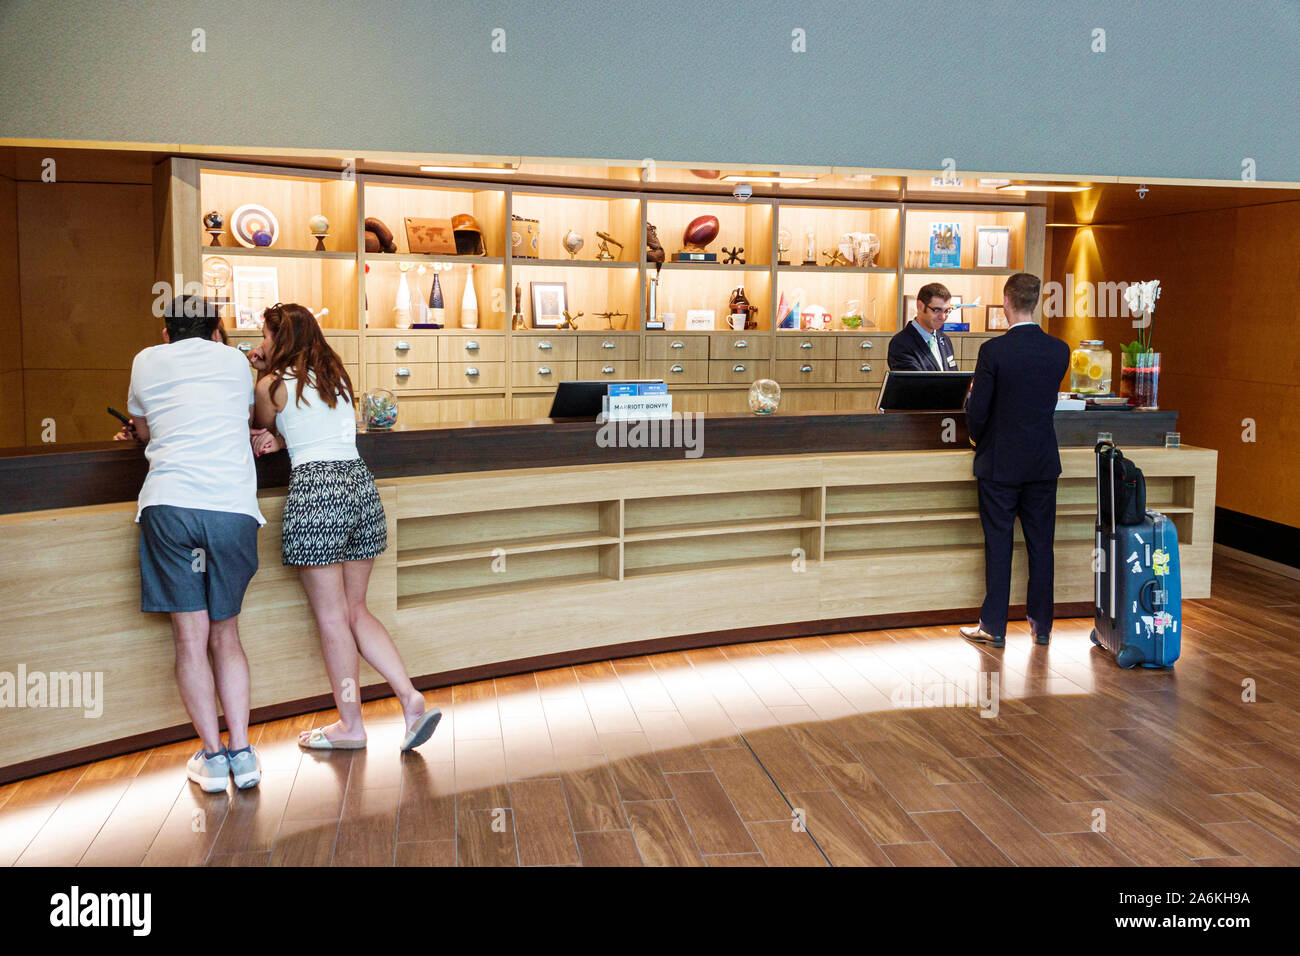 Barcelona Spain Catalonia Catalunya El Poblenou Avinguda Diagonal Four Points by Sheraton hotel front desk counter agent lobby guest check-in inside m Stock Photo